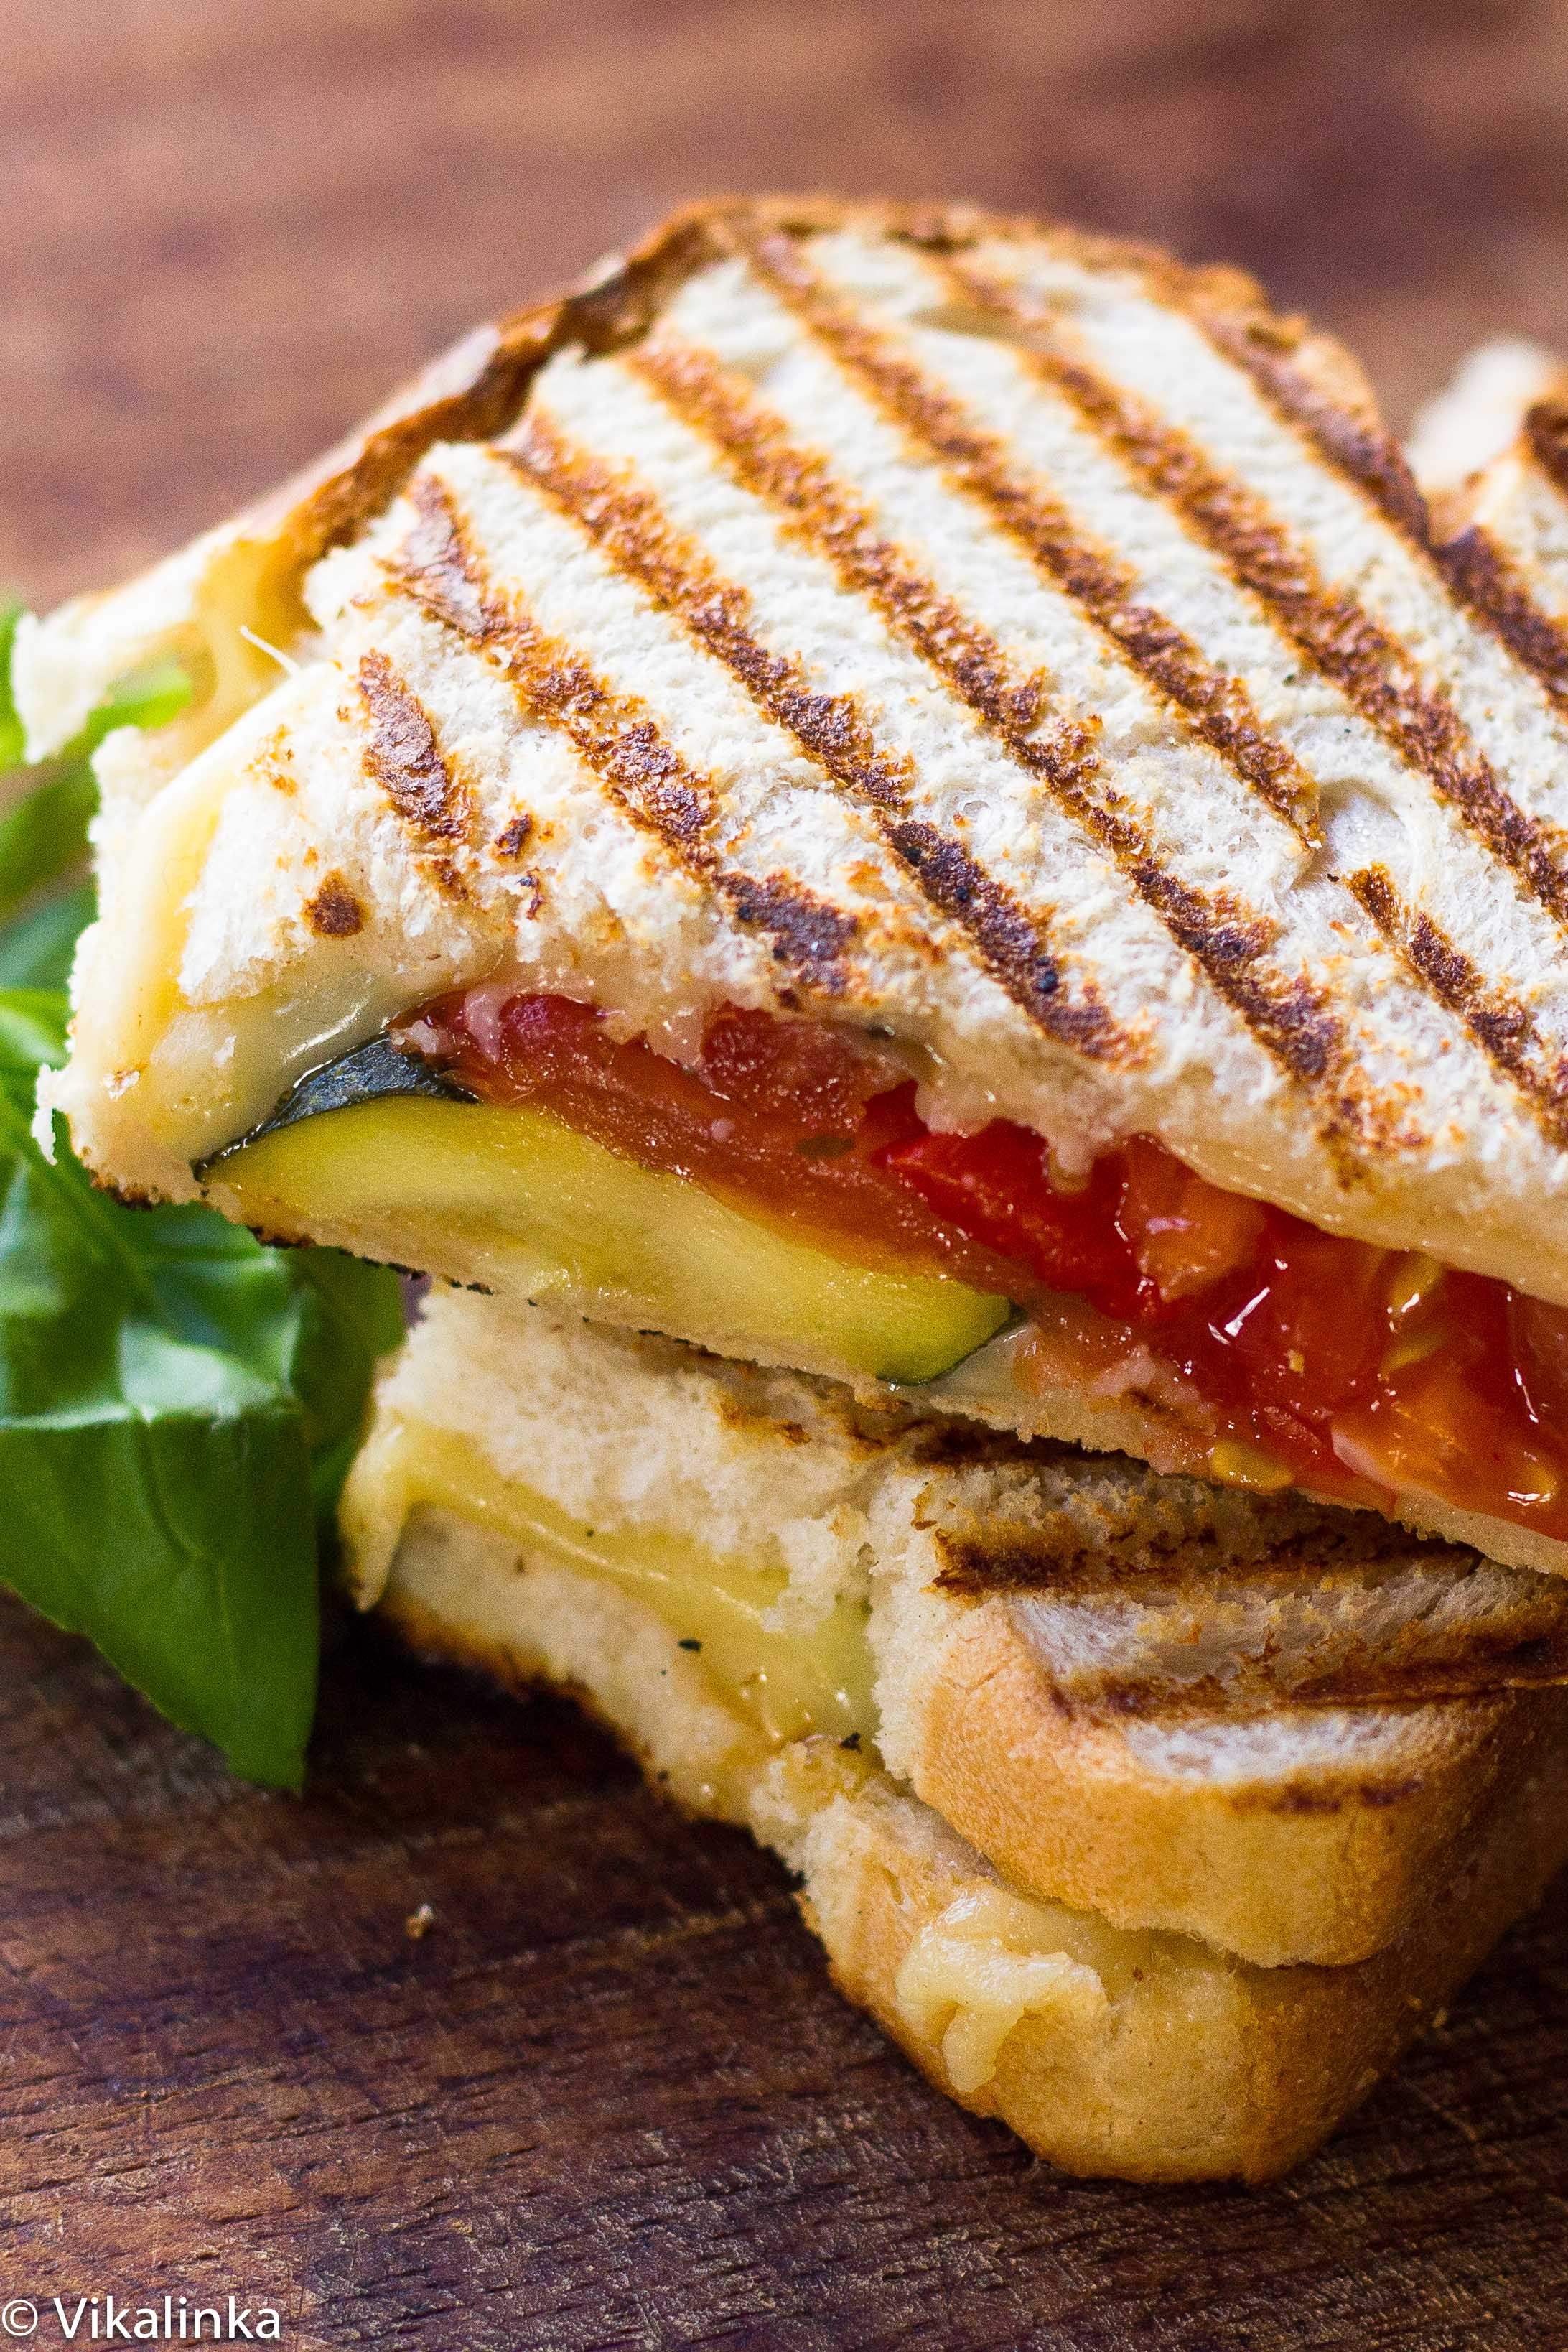 grilled gouda and zucchini panini aka grilled cheese. Black Bedroom Furniture Sets. Home Design Ideas